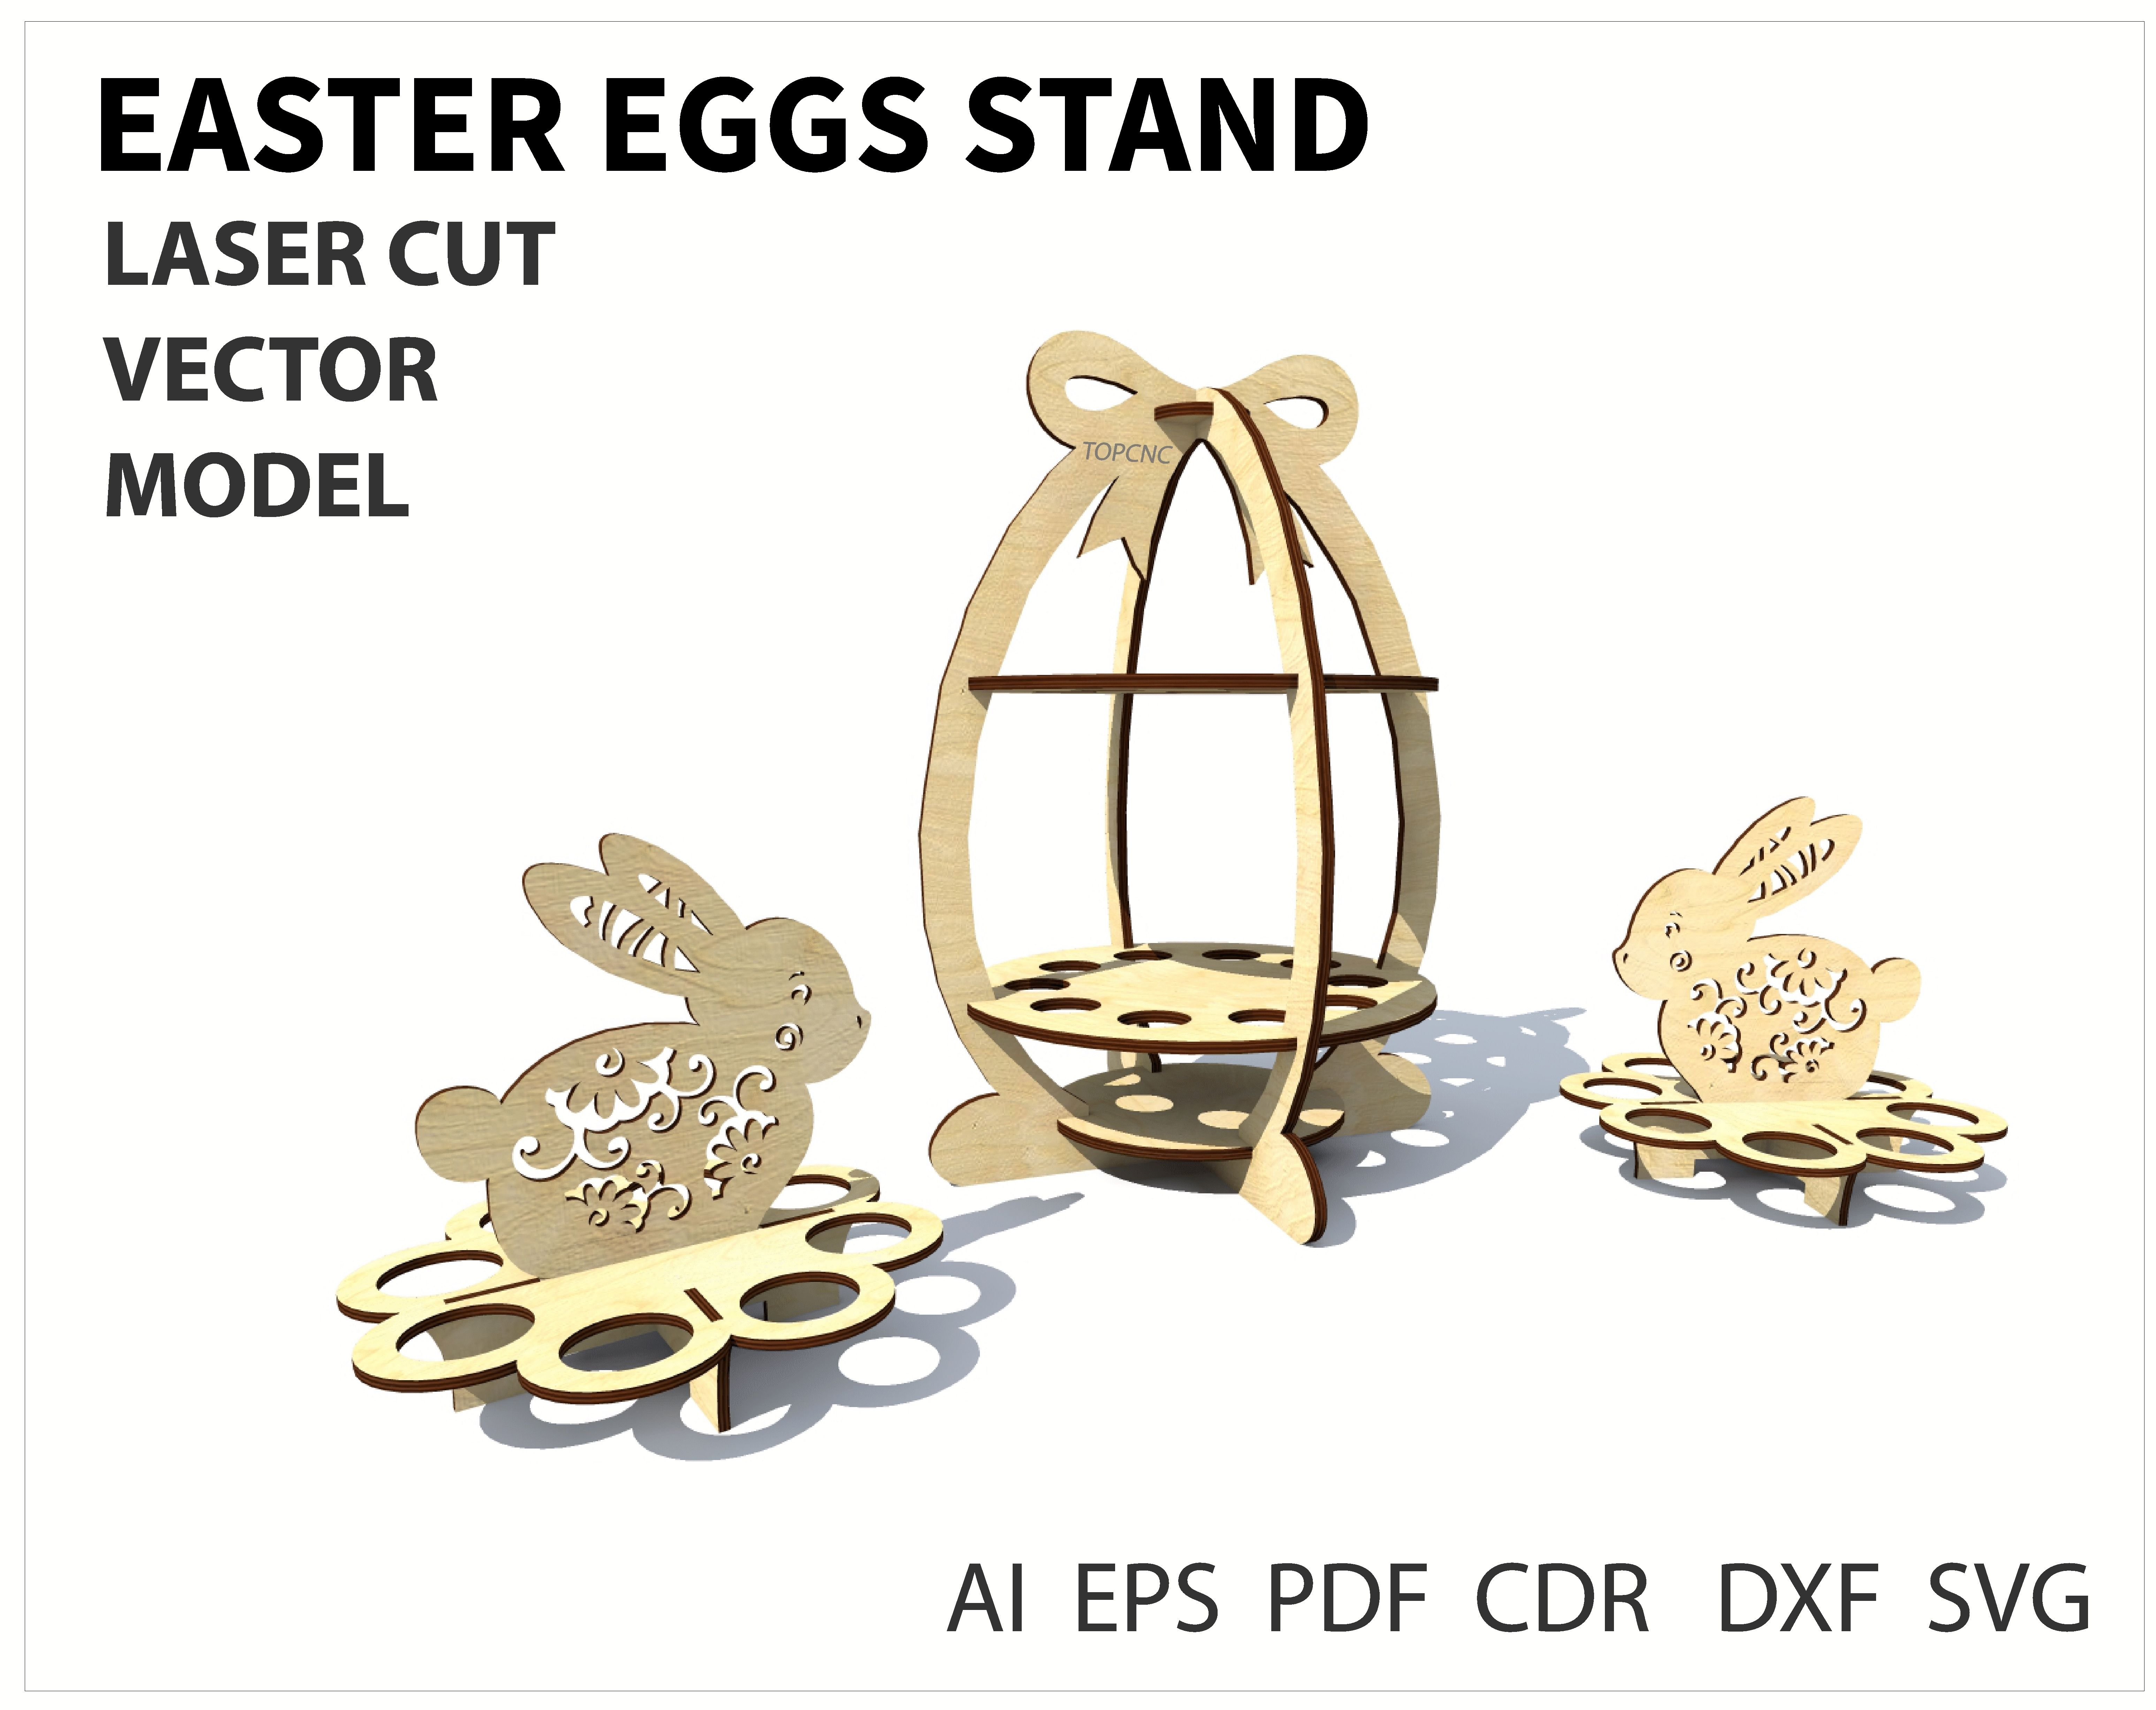 Vector Cutting Plan Rabbit Laser Cutting Digital Gift Box Desing Vector Cutting Plan CNC File Suitable  Suitable For Commercial Use